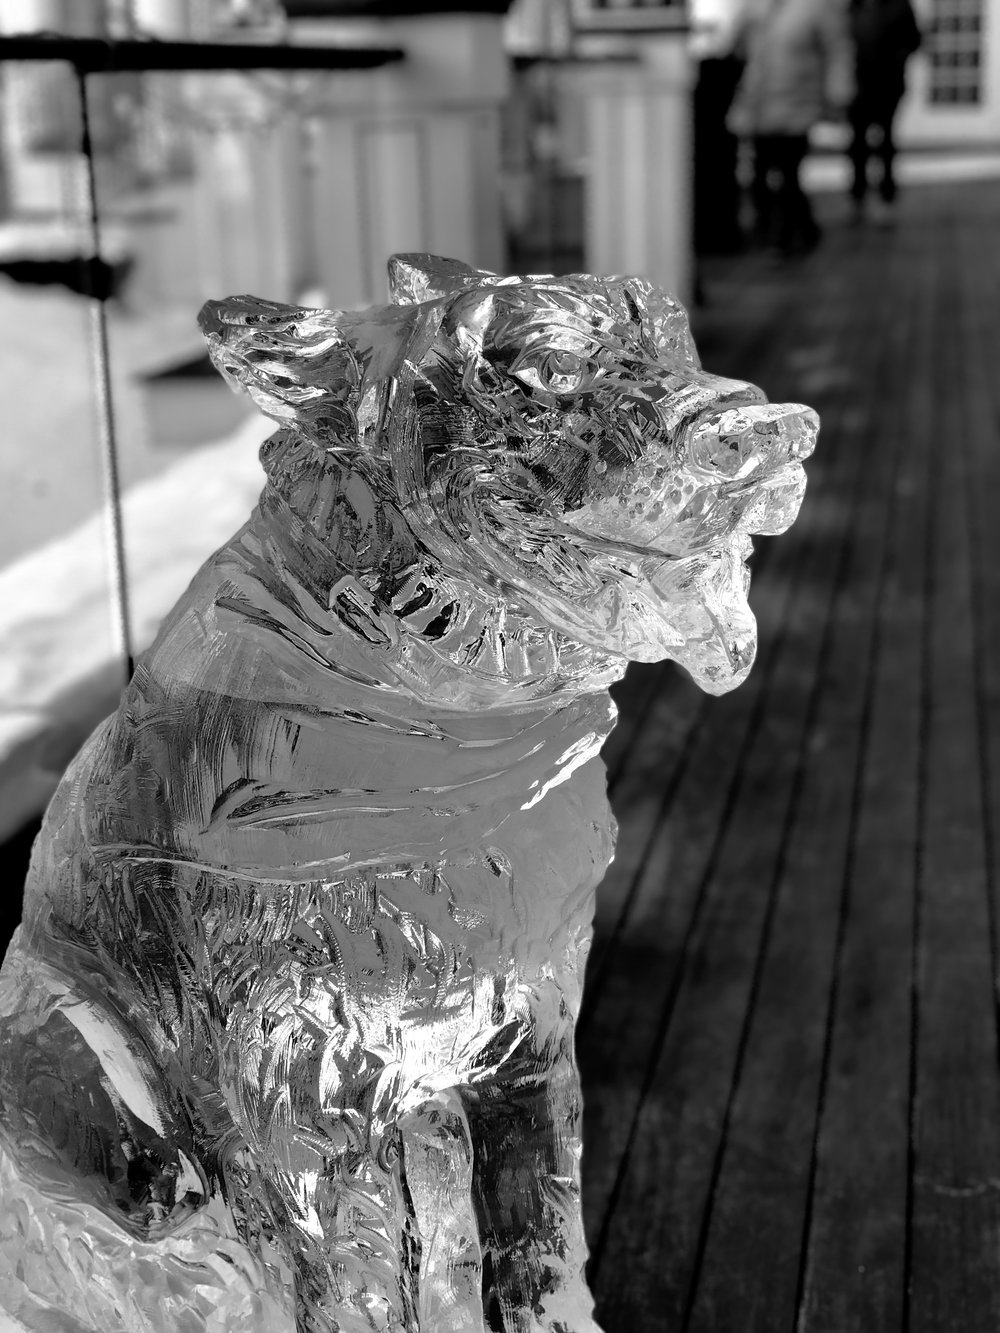 Ice sculpture on one of the porches at The Sagamore in Bolton Landing, NY. c. January 2019